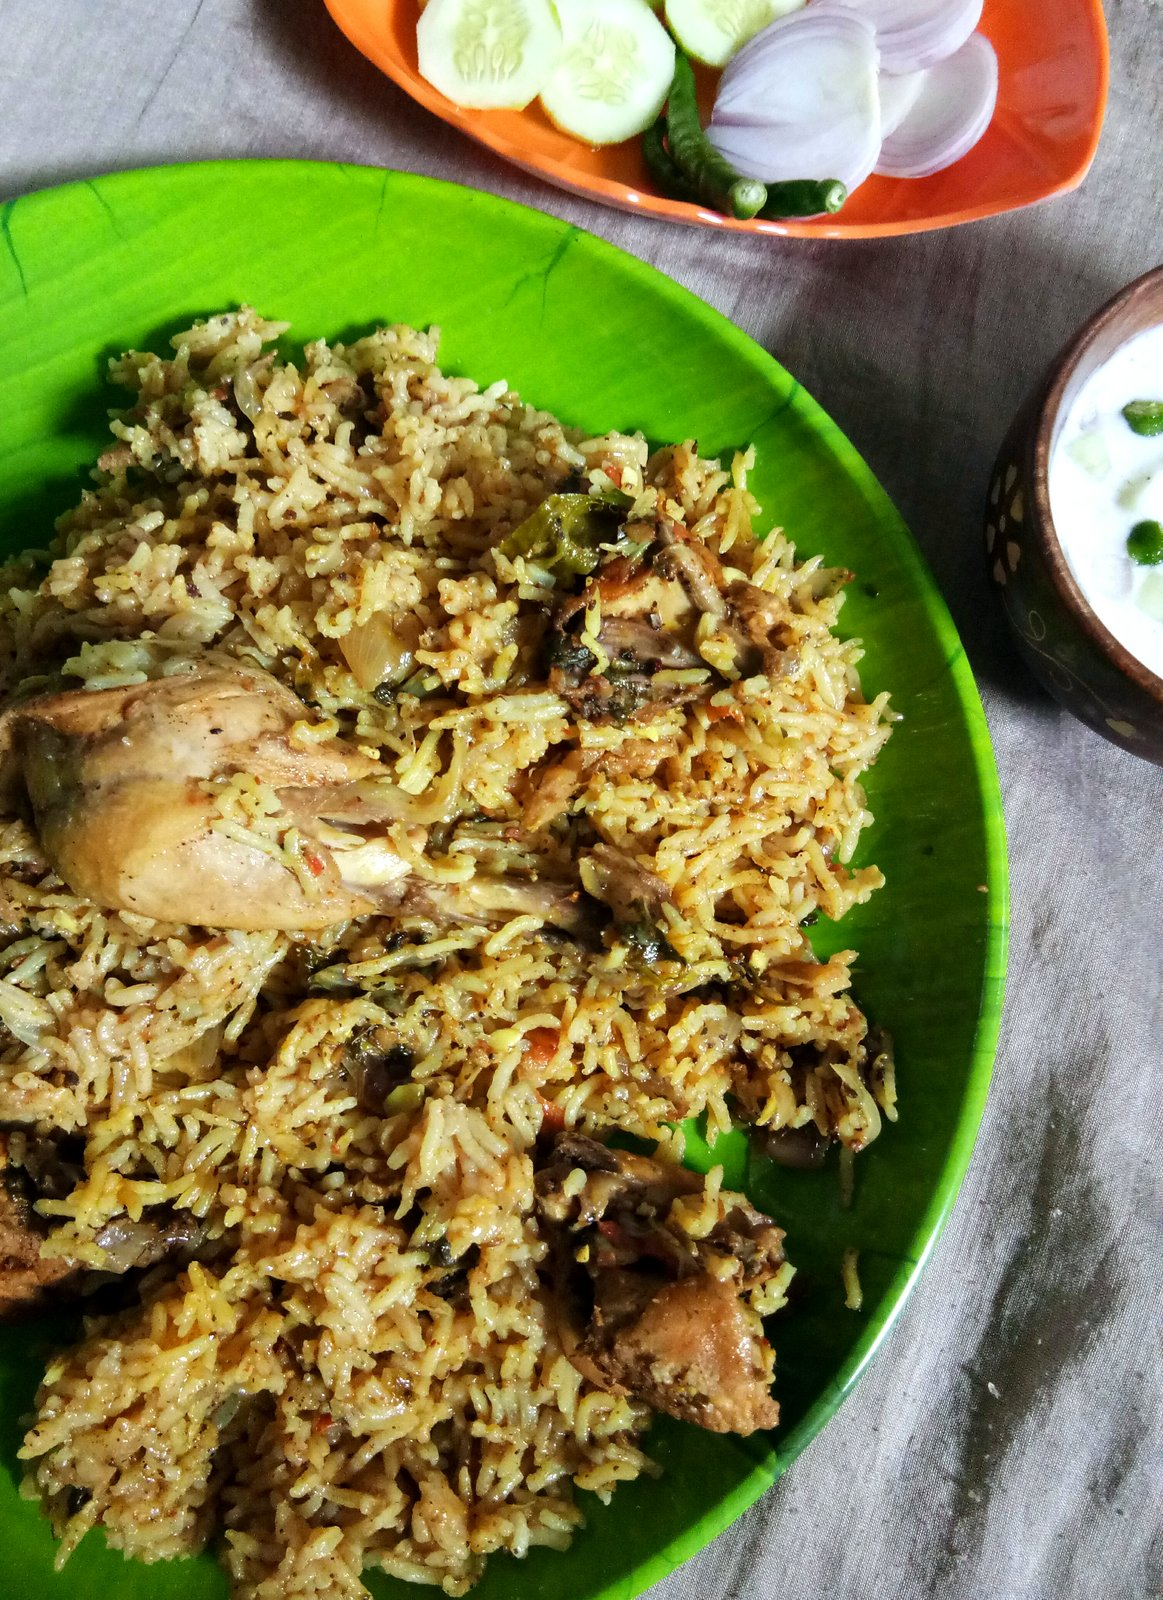 Thalapakattu chicken biryani recipe by archanas kitchen thalapakattu chicken biryani recipe forumfinder Images